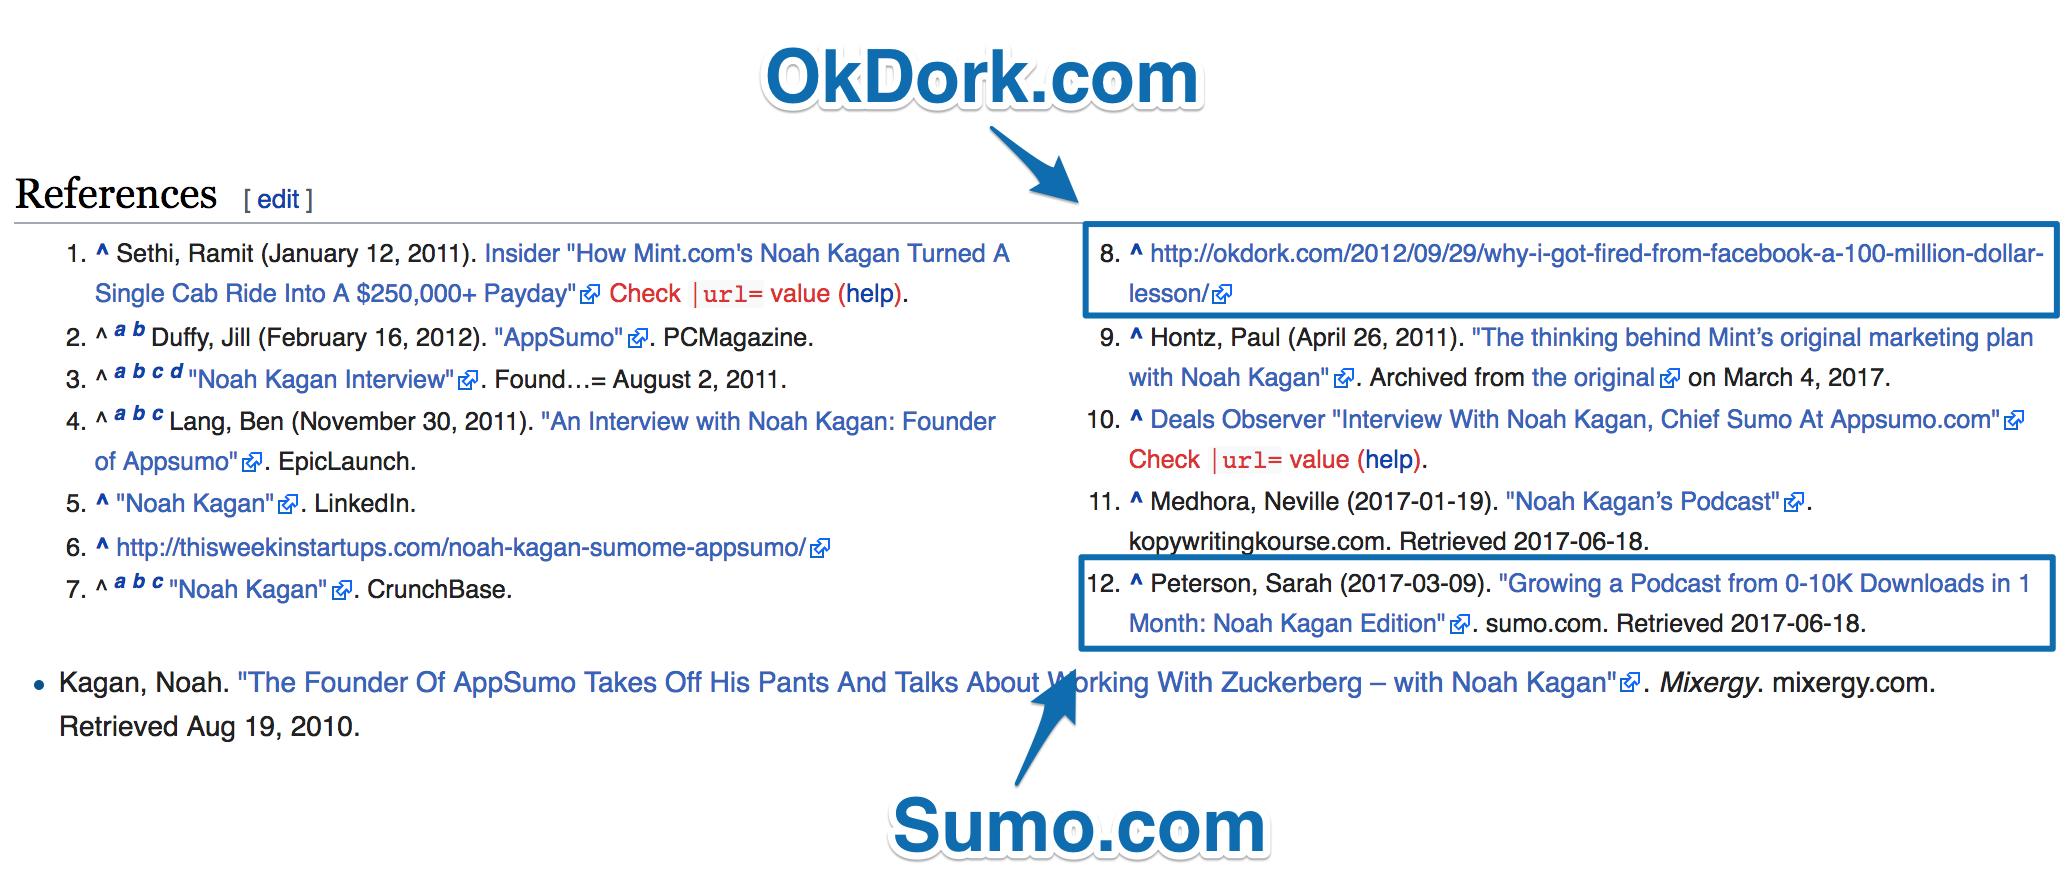 Screenshot showing okdork.com and sumo.com being futured on wikipedia references